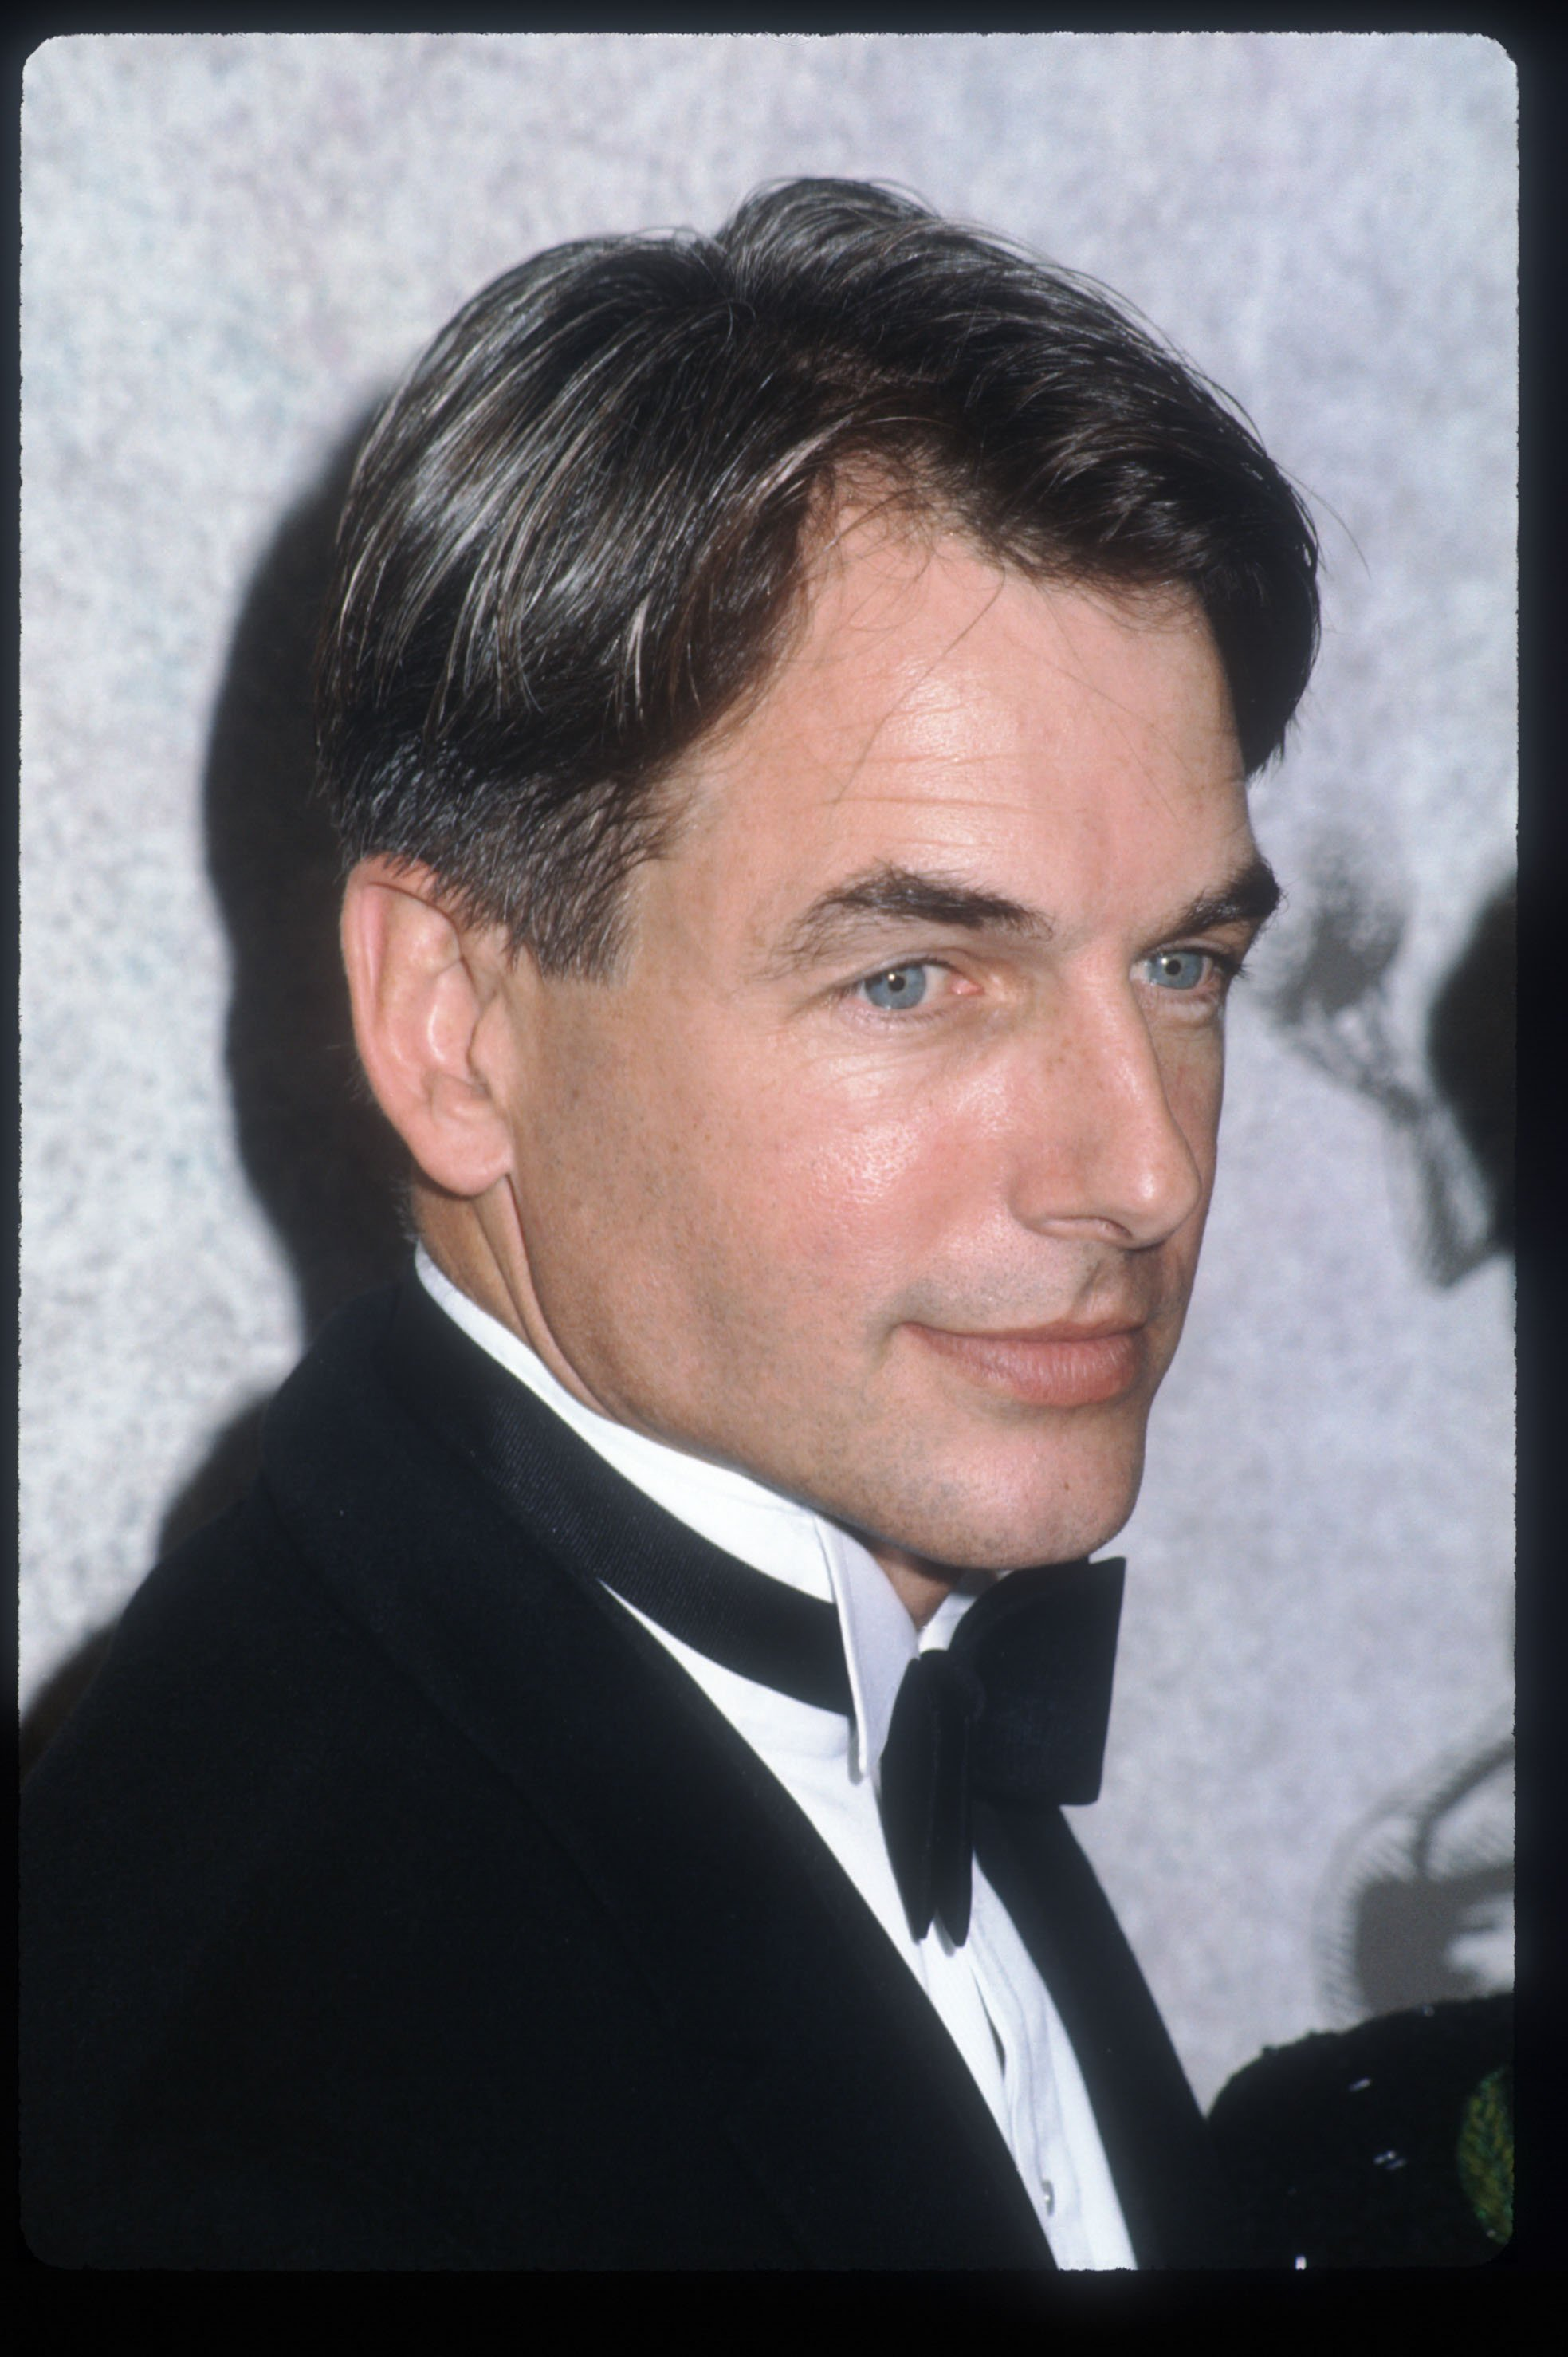 Mark Harmon, Los Angeles, Kalifornien, 6. Dezember, 1992 | Quelle: Getty Images